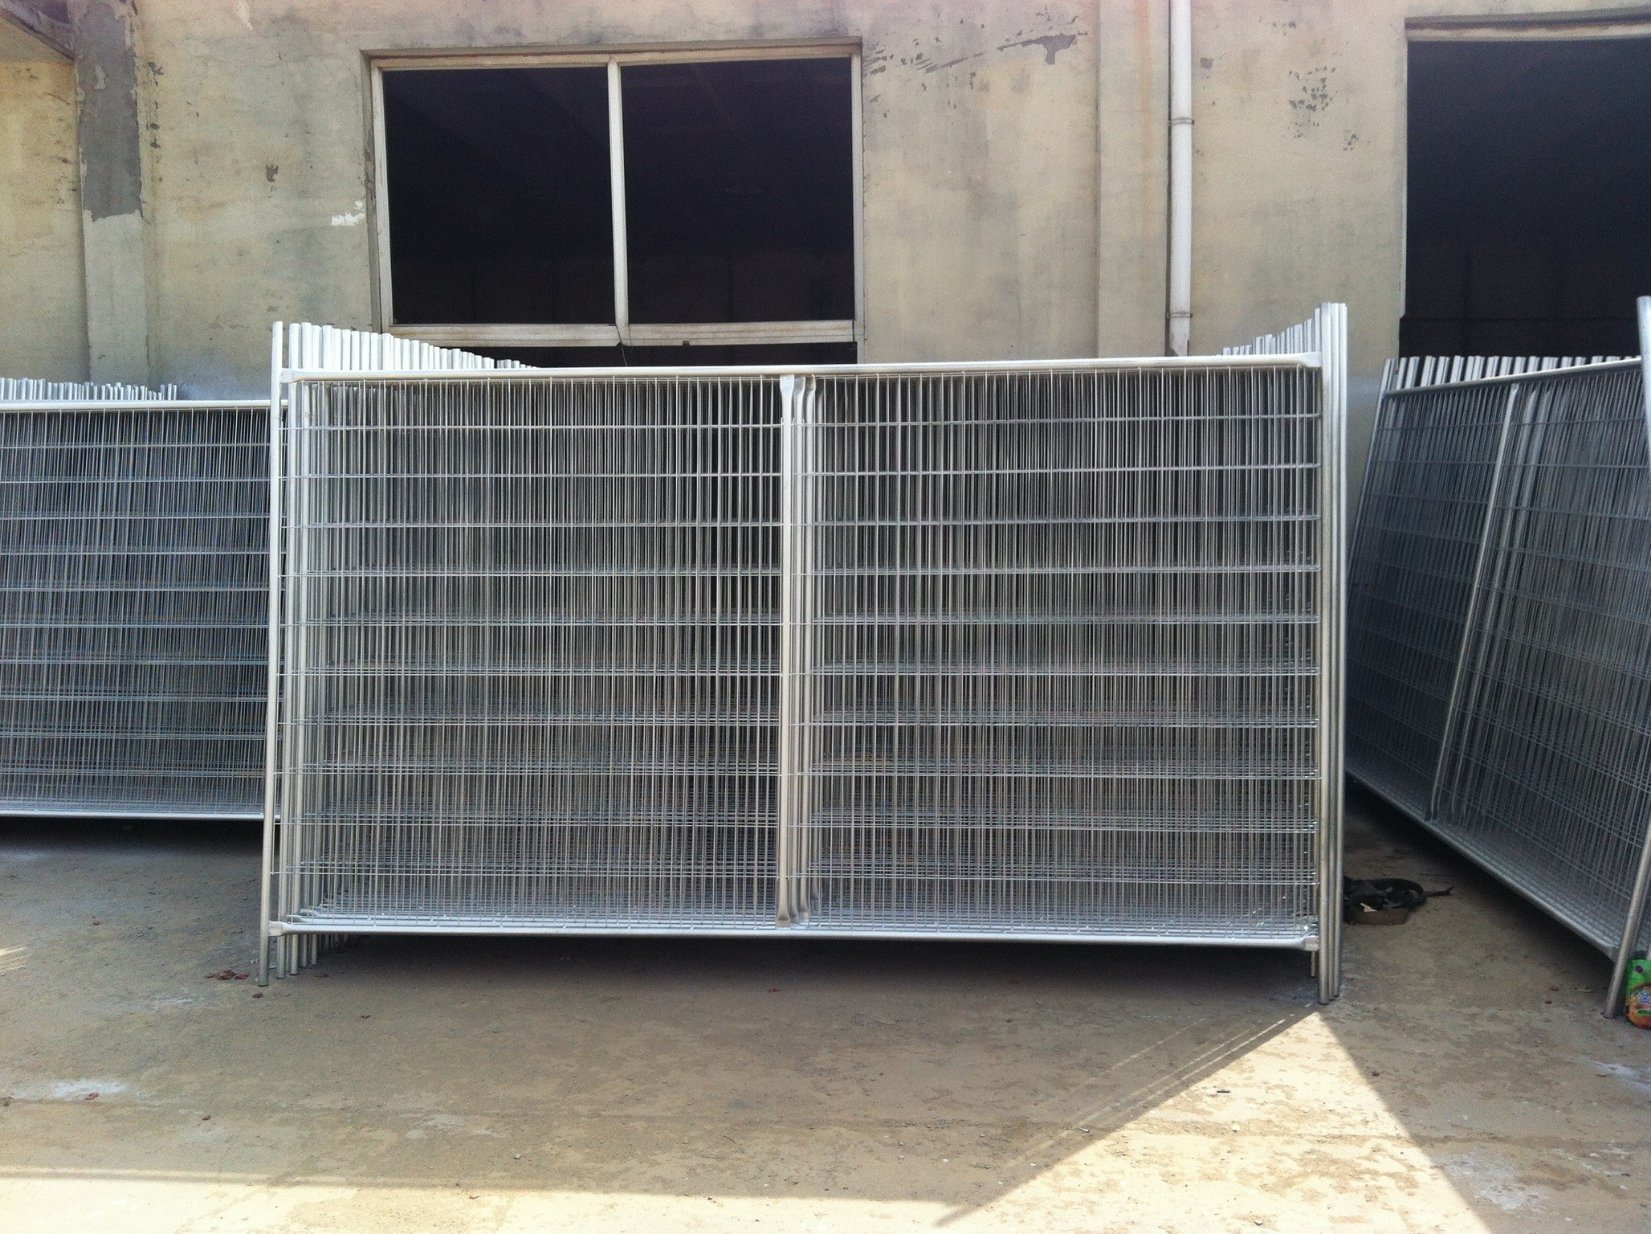 2100mm X 2400mm Width As4687-2007 Temporary Construction Fence Panels